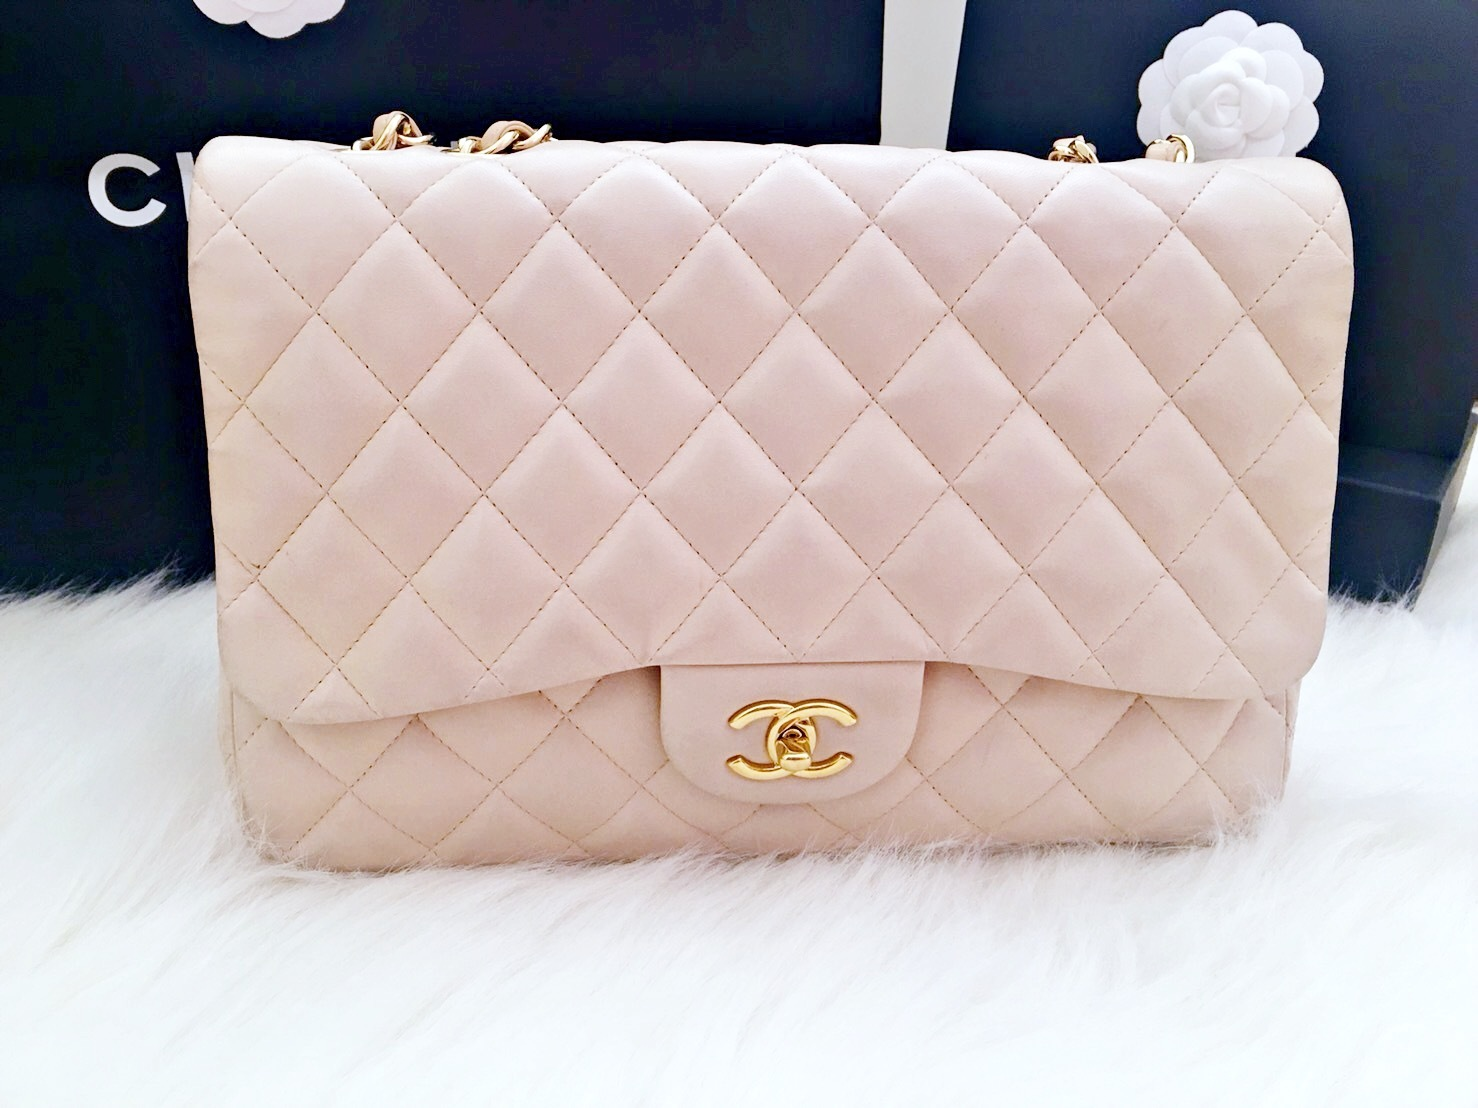 6646535b711e 3fec2036 105a 4b6d bed0 04f0f4a9f19e. 3fec2036 105a 4b6d bed0 04f0f4a9f19e. AUTHENTIC  CHANEL BEIGE QUILTED LAMBSKIN JUMBO CLASSIC FLAP BAG ...